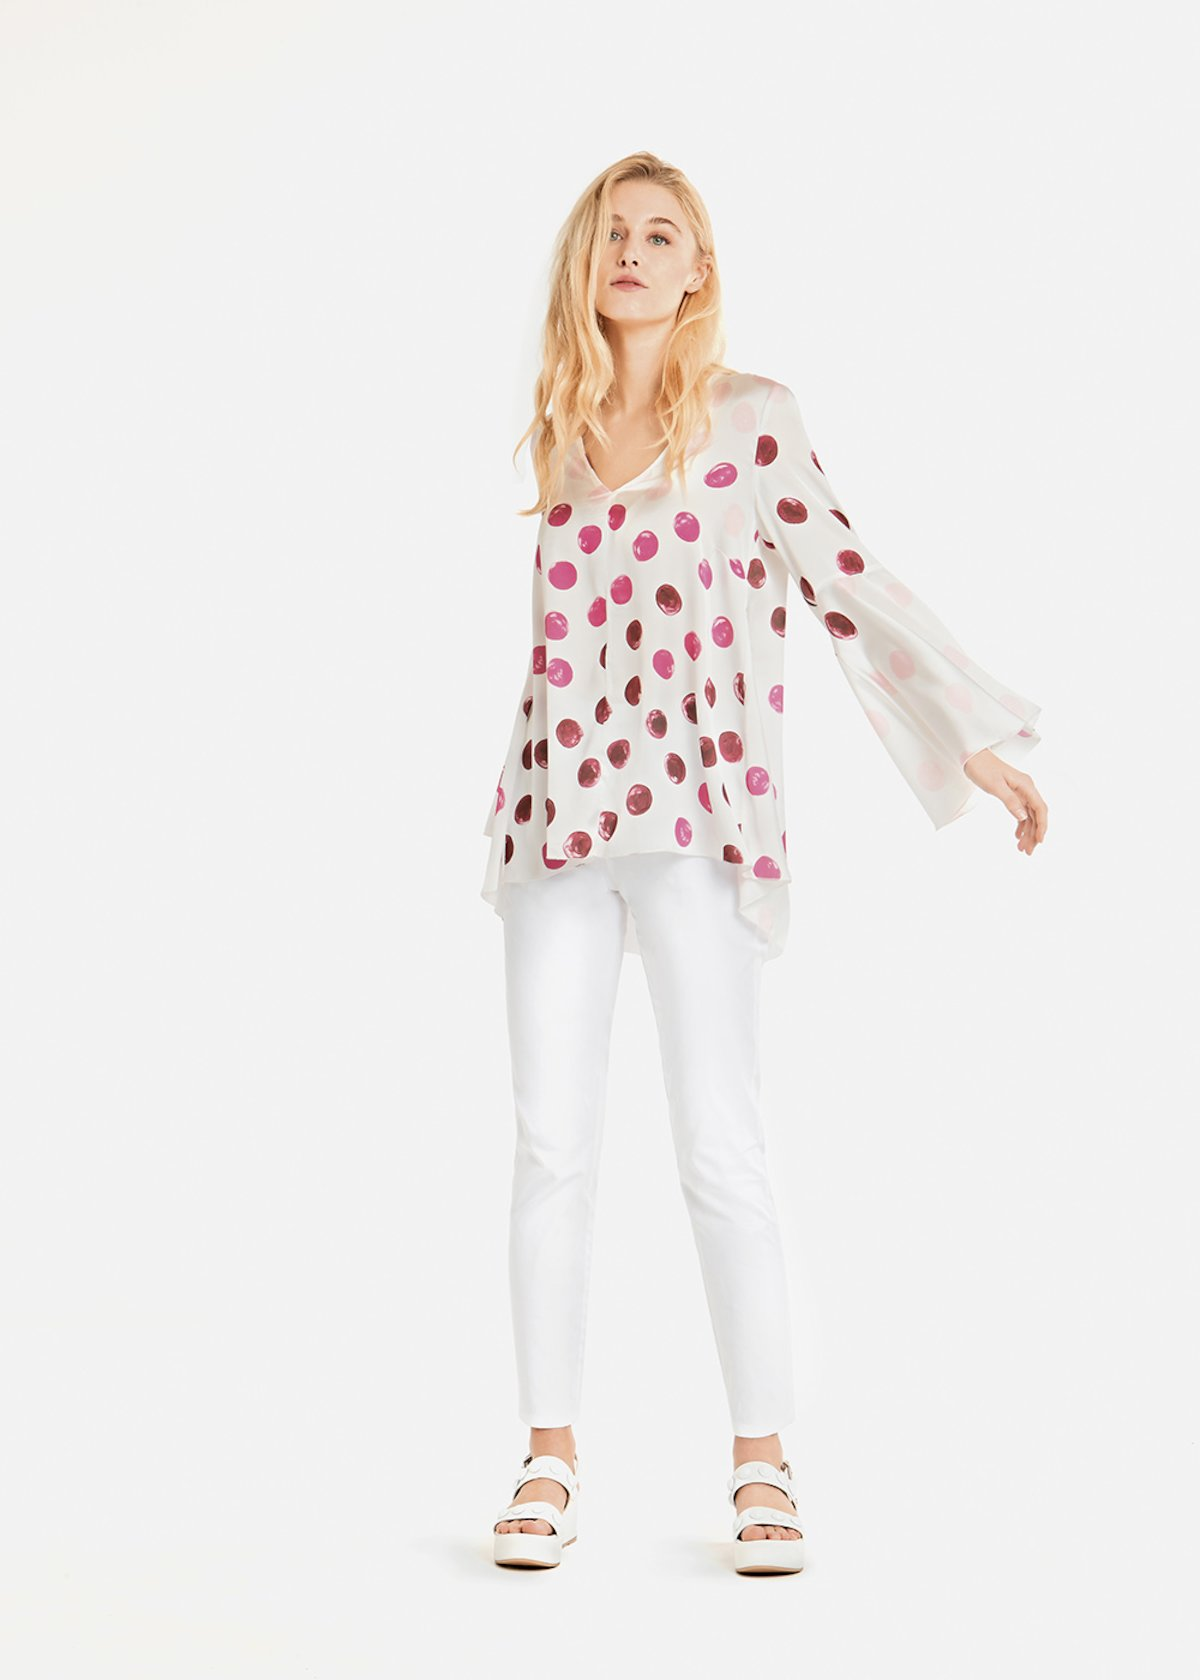 Sandra polka dot t-shirt with bell sleeves - White / Petunia Pois